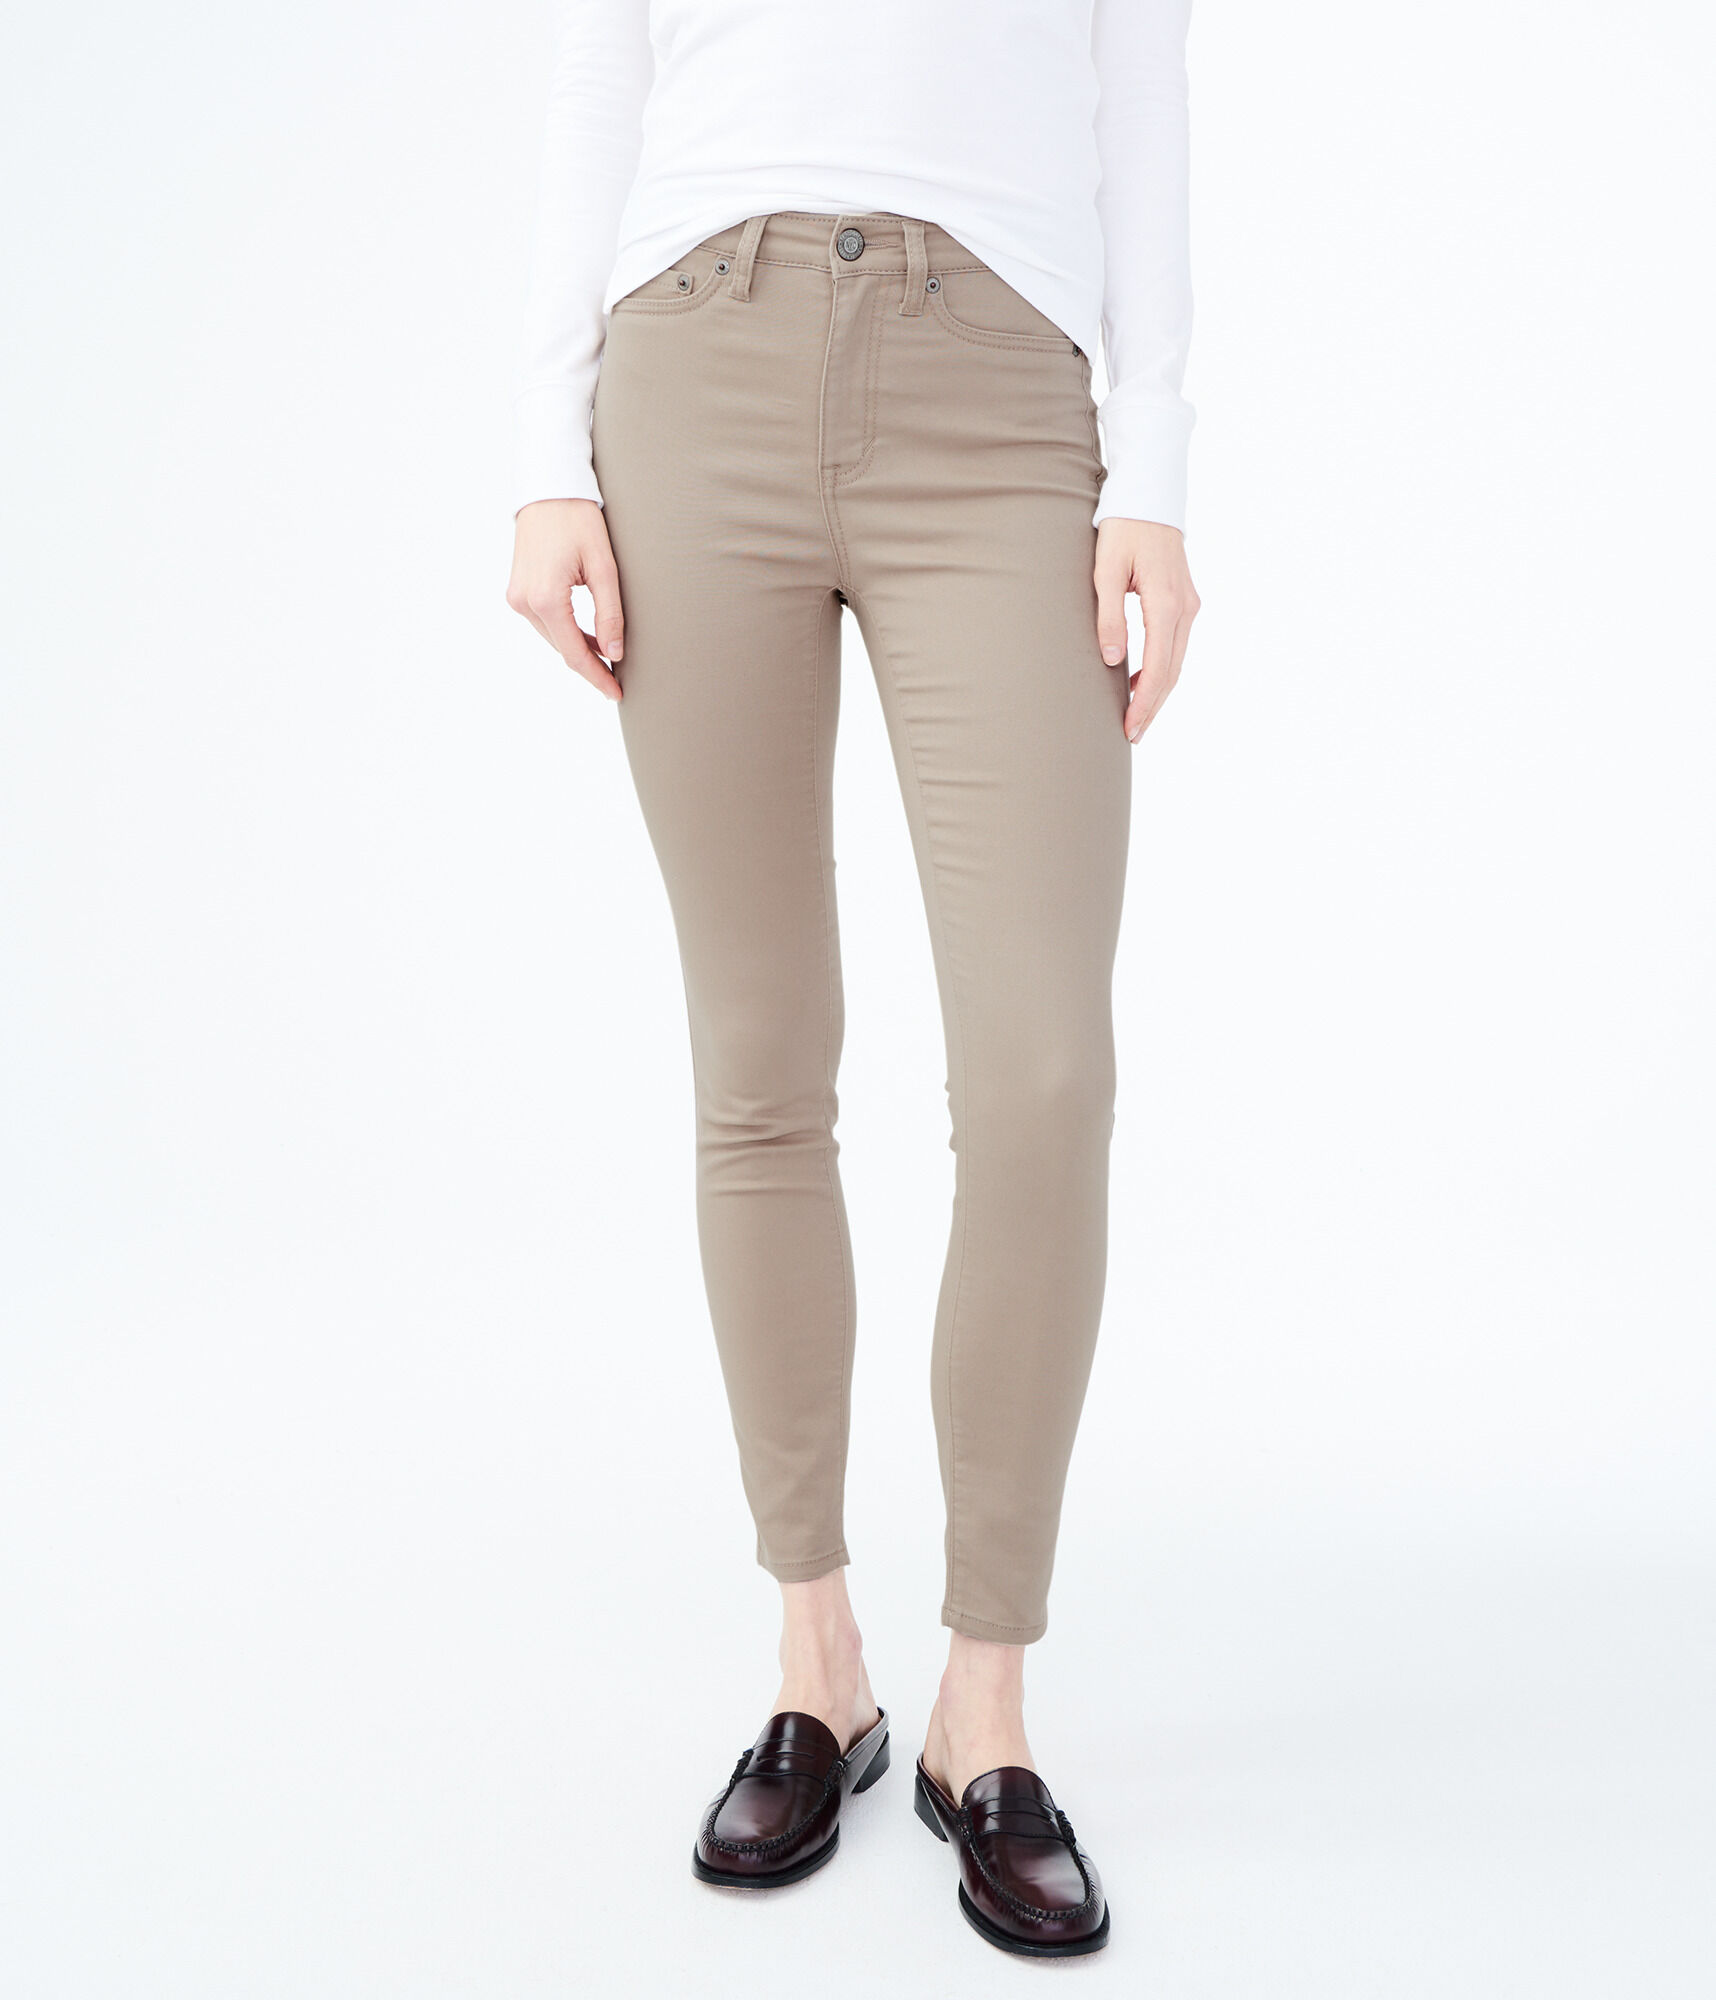 6a8bdb64b75 ... Seriously Stretchy High-Waisted Solid Uniform Jegging    ...